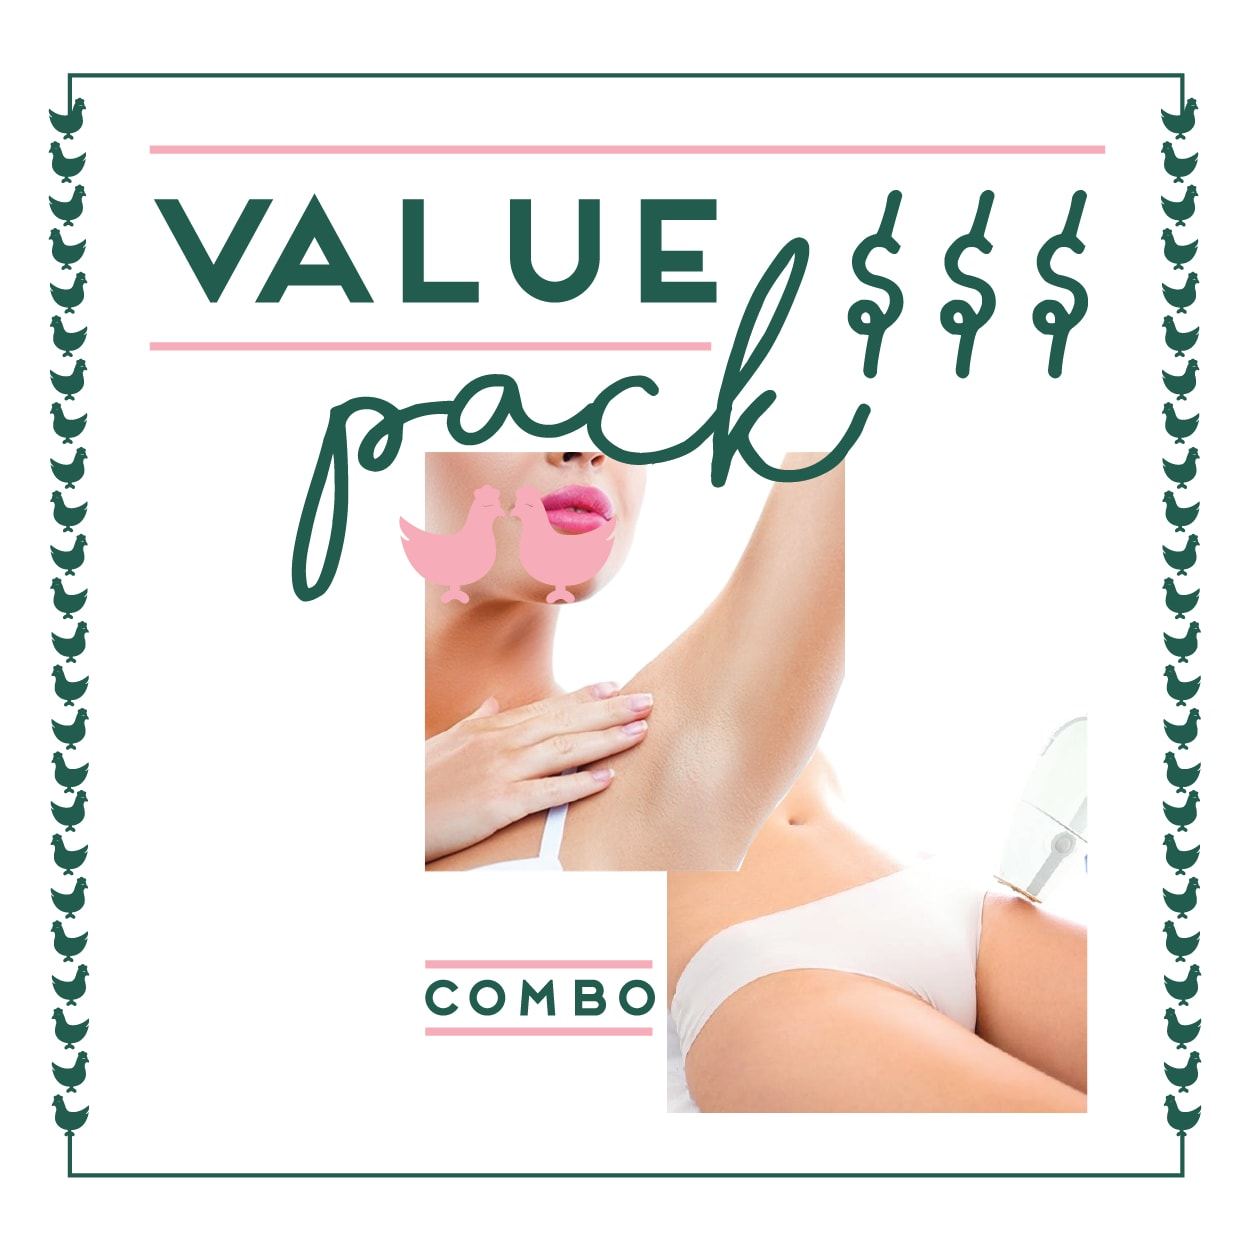 Bikini & Underarms Laser - 6 Session Value Pack